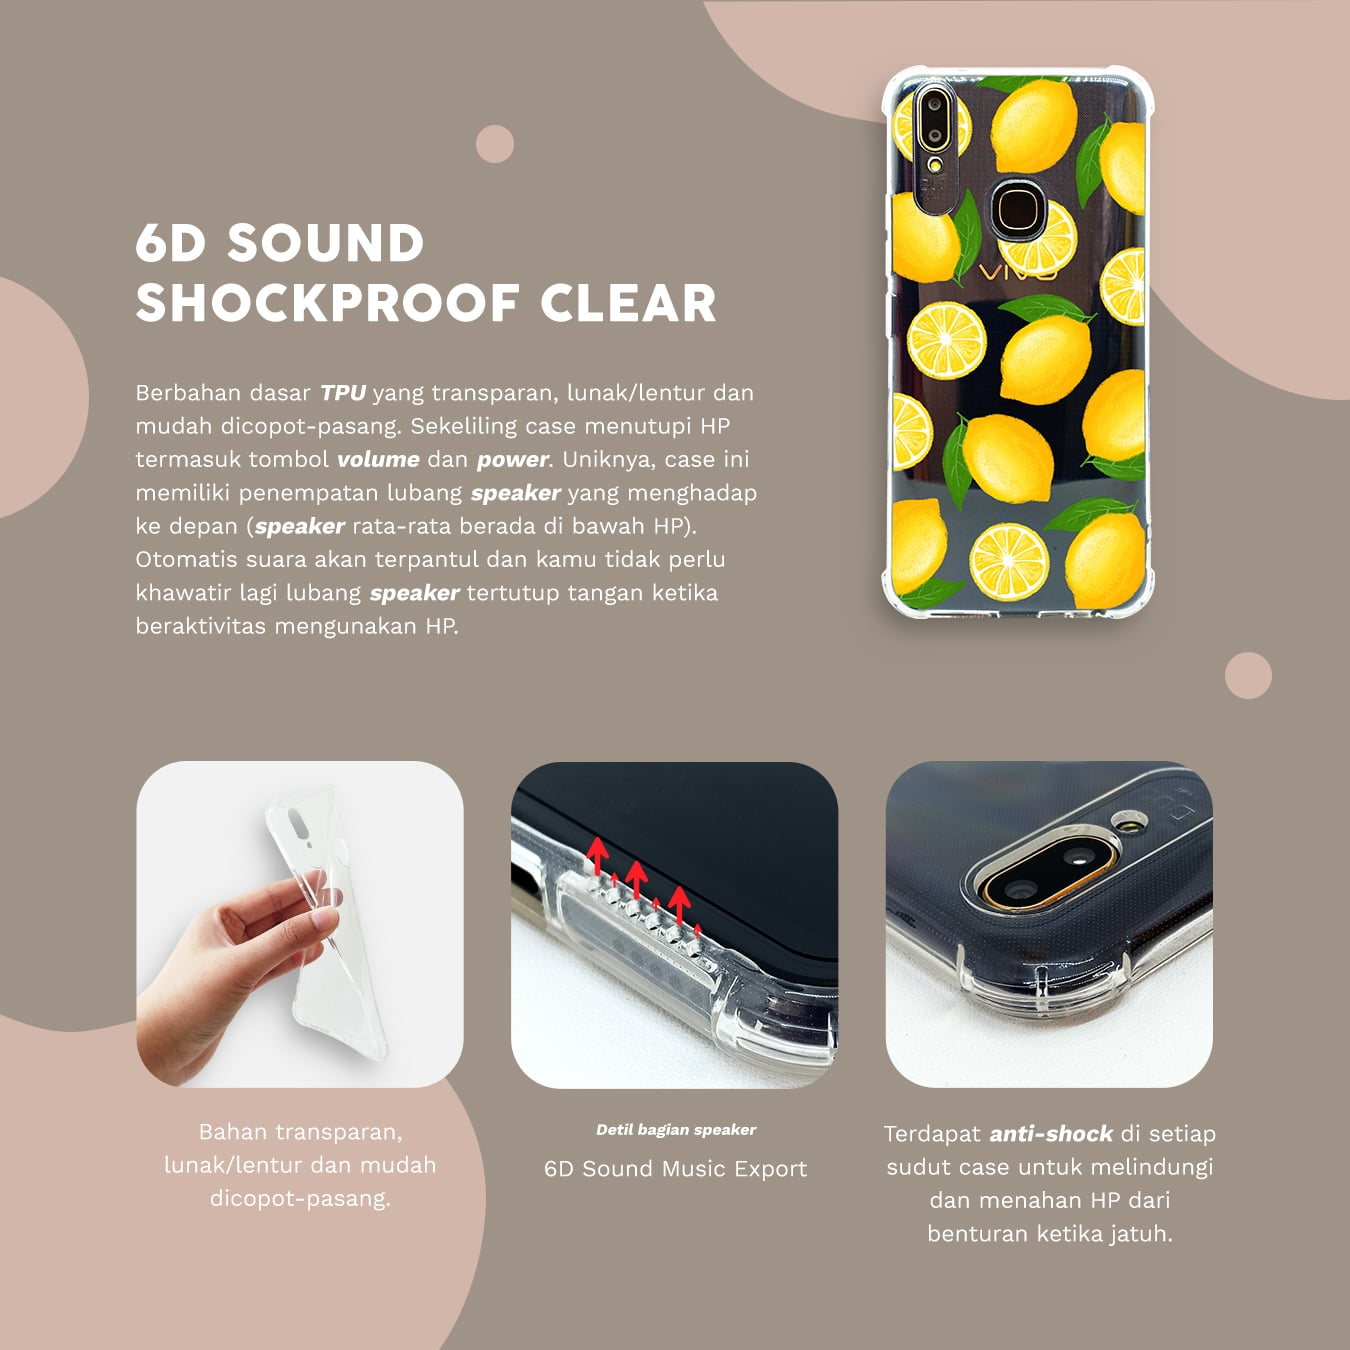 6D Sound Shockproof